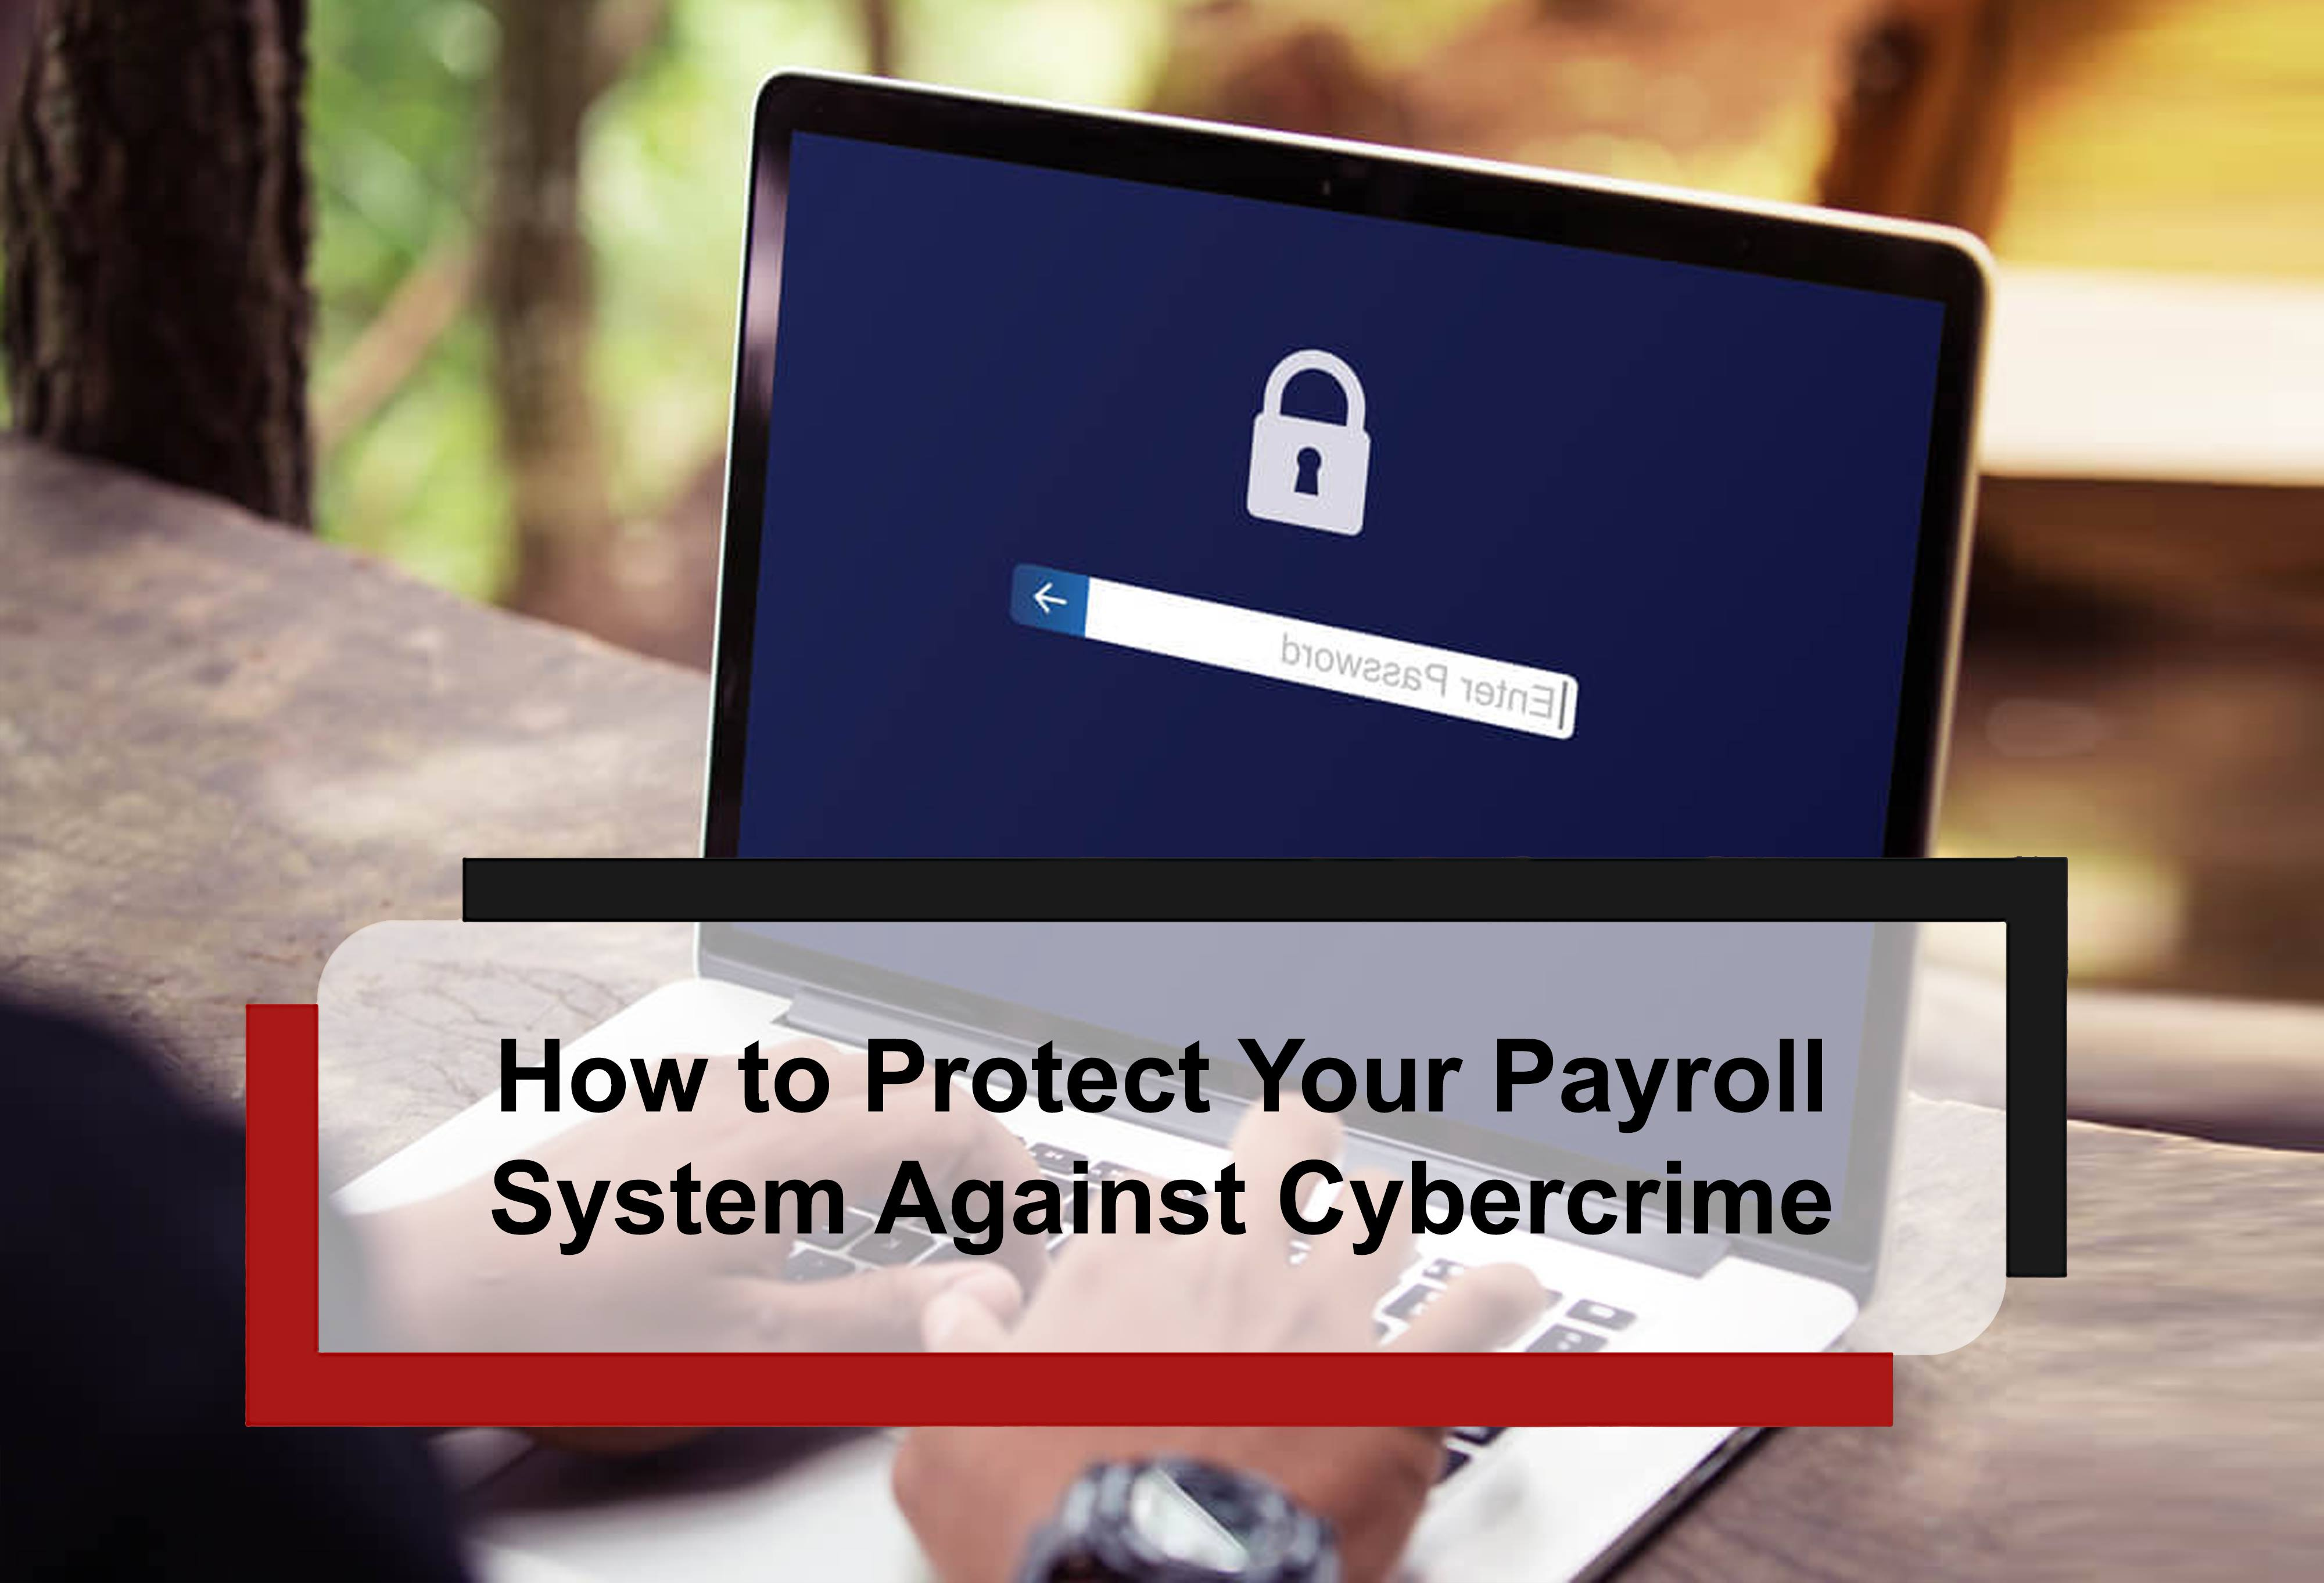 How to Protect Your Payroll System Against Cybercrime